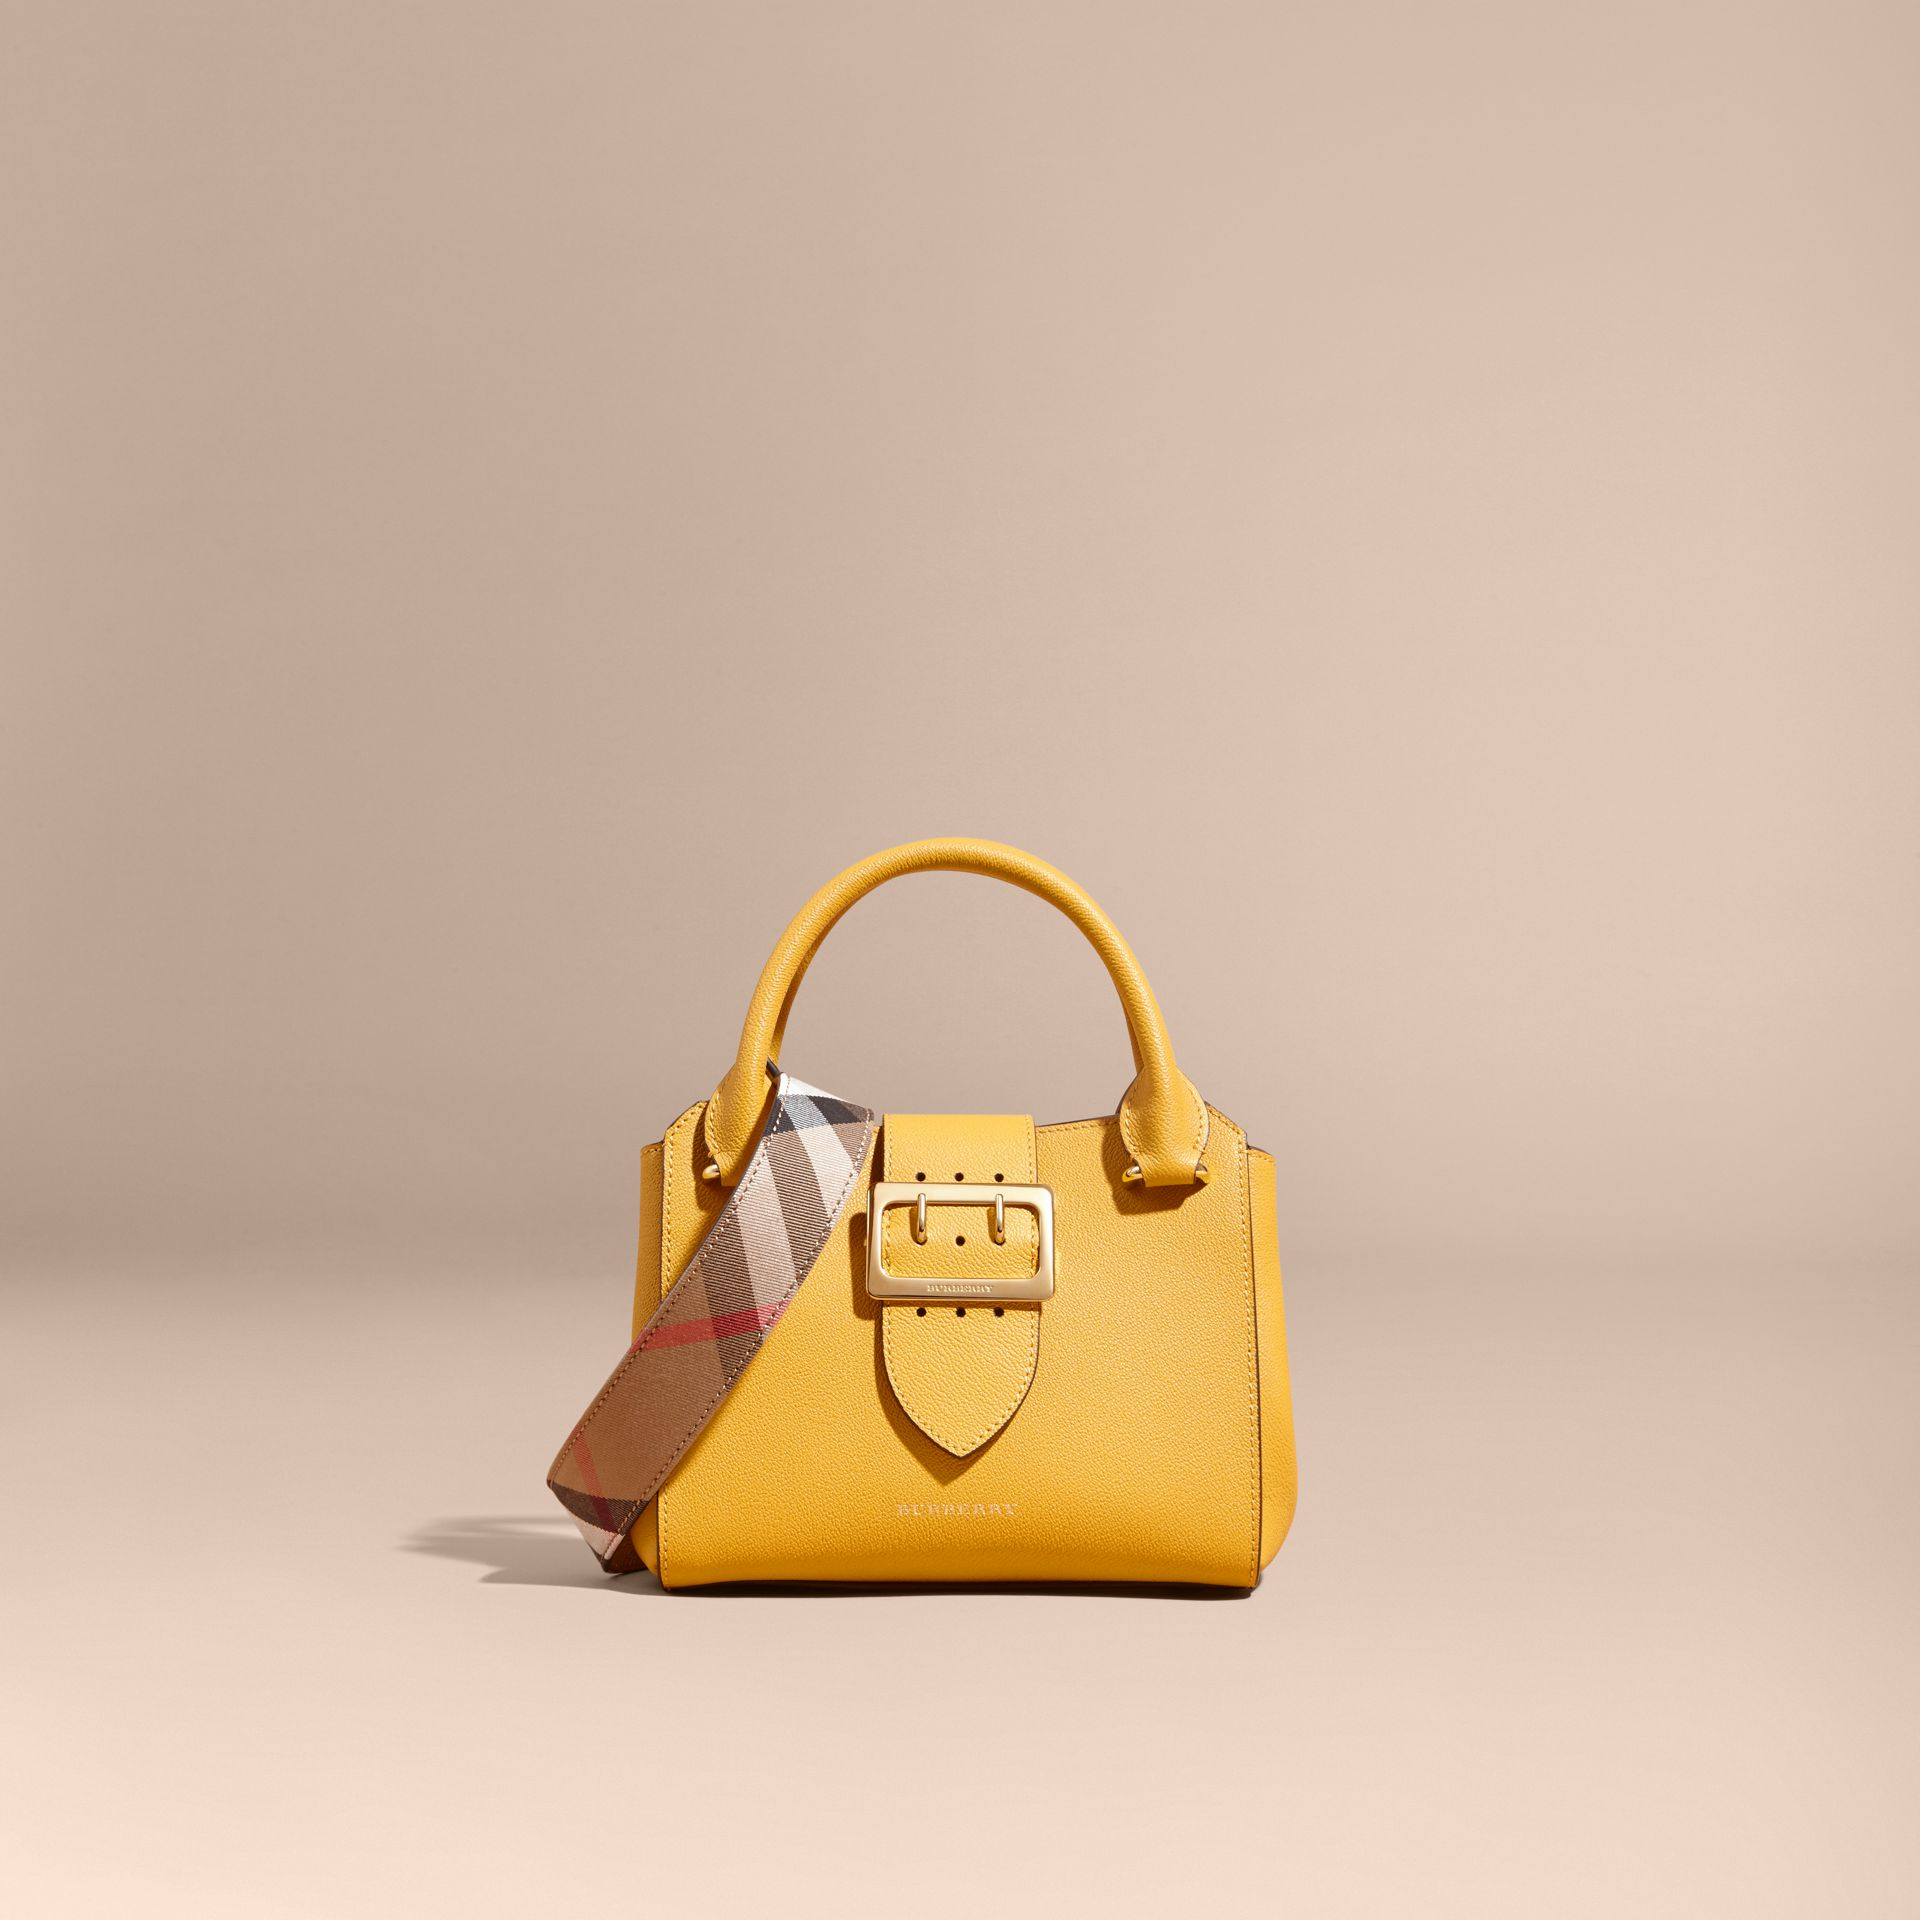 The Small Buckle Tote in Grainy Leather in Bright Straw - Women | Burberry - gallery image 8